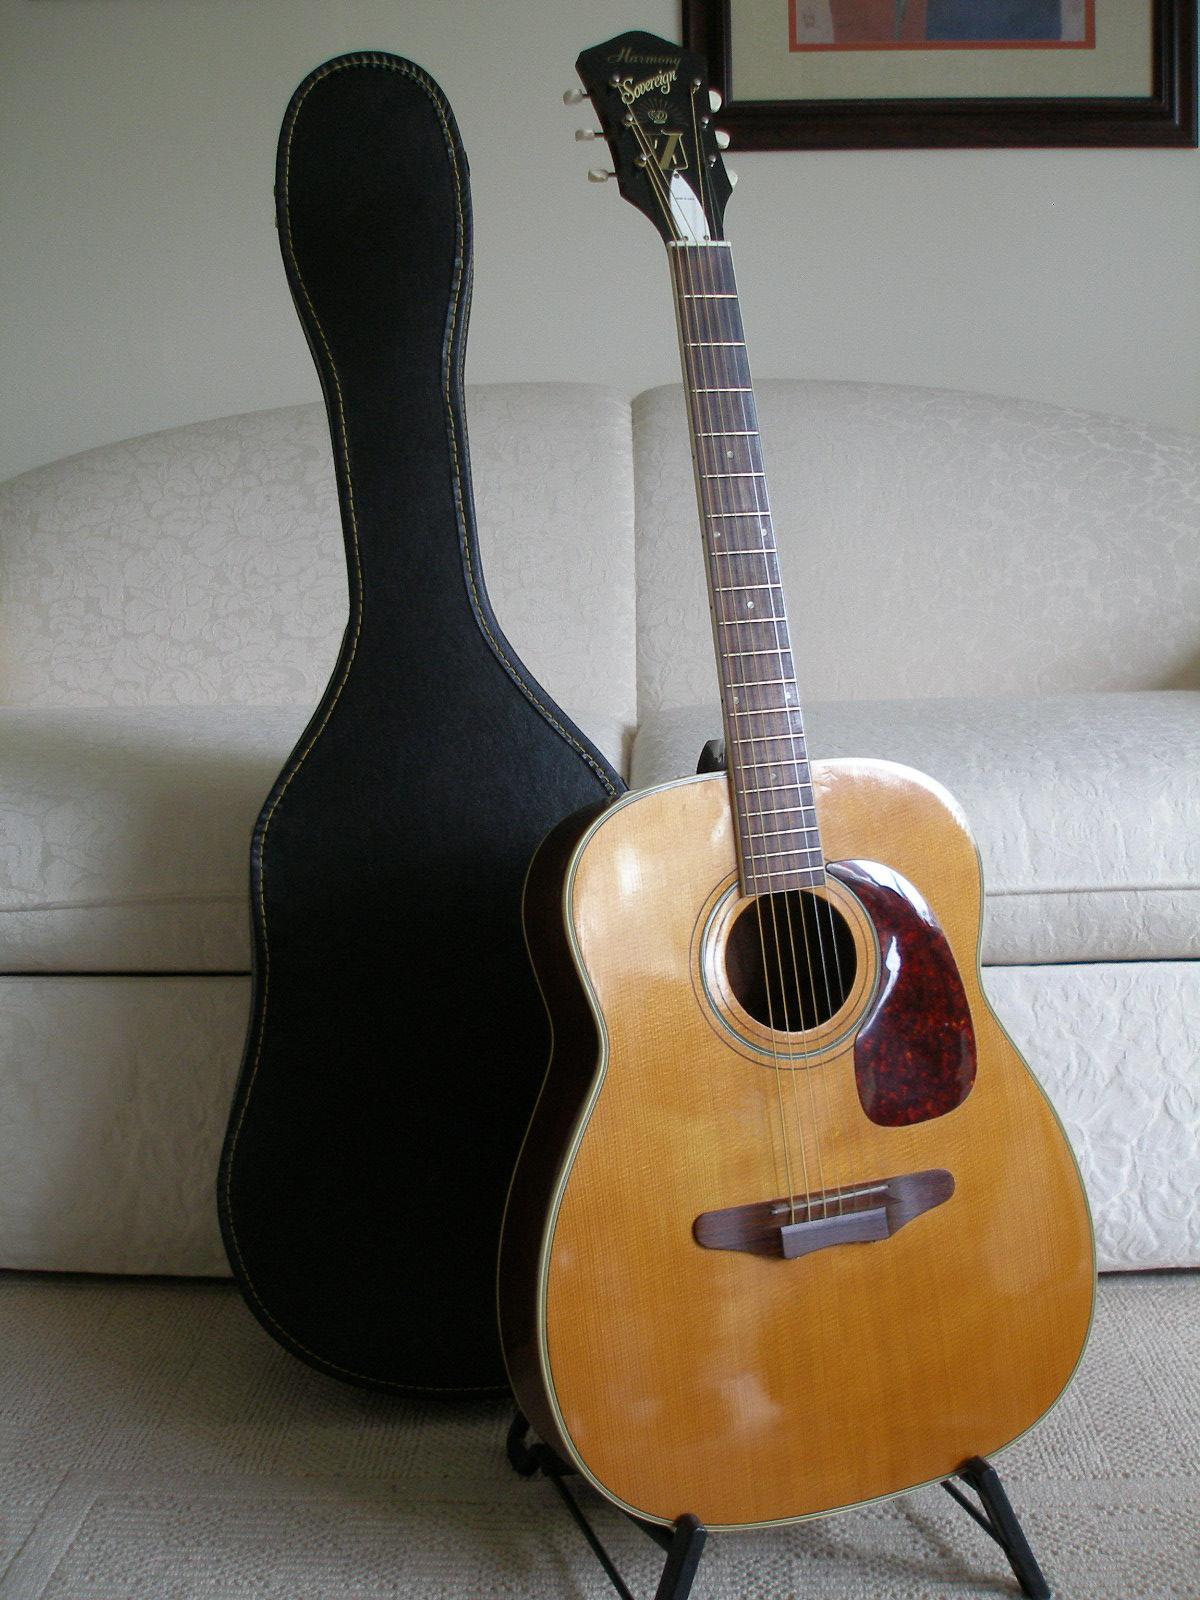 Sovereign H1260 Guitar Made By Harmony